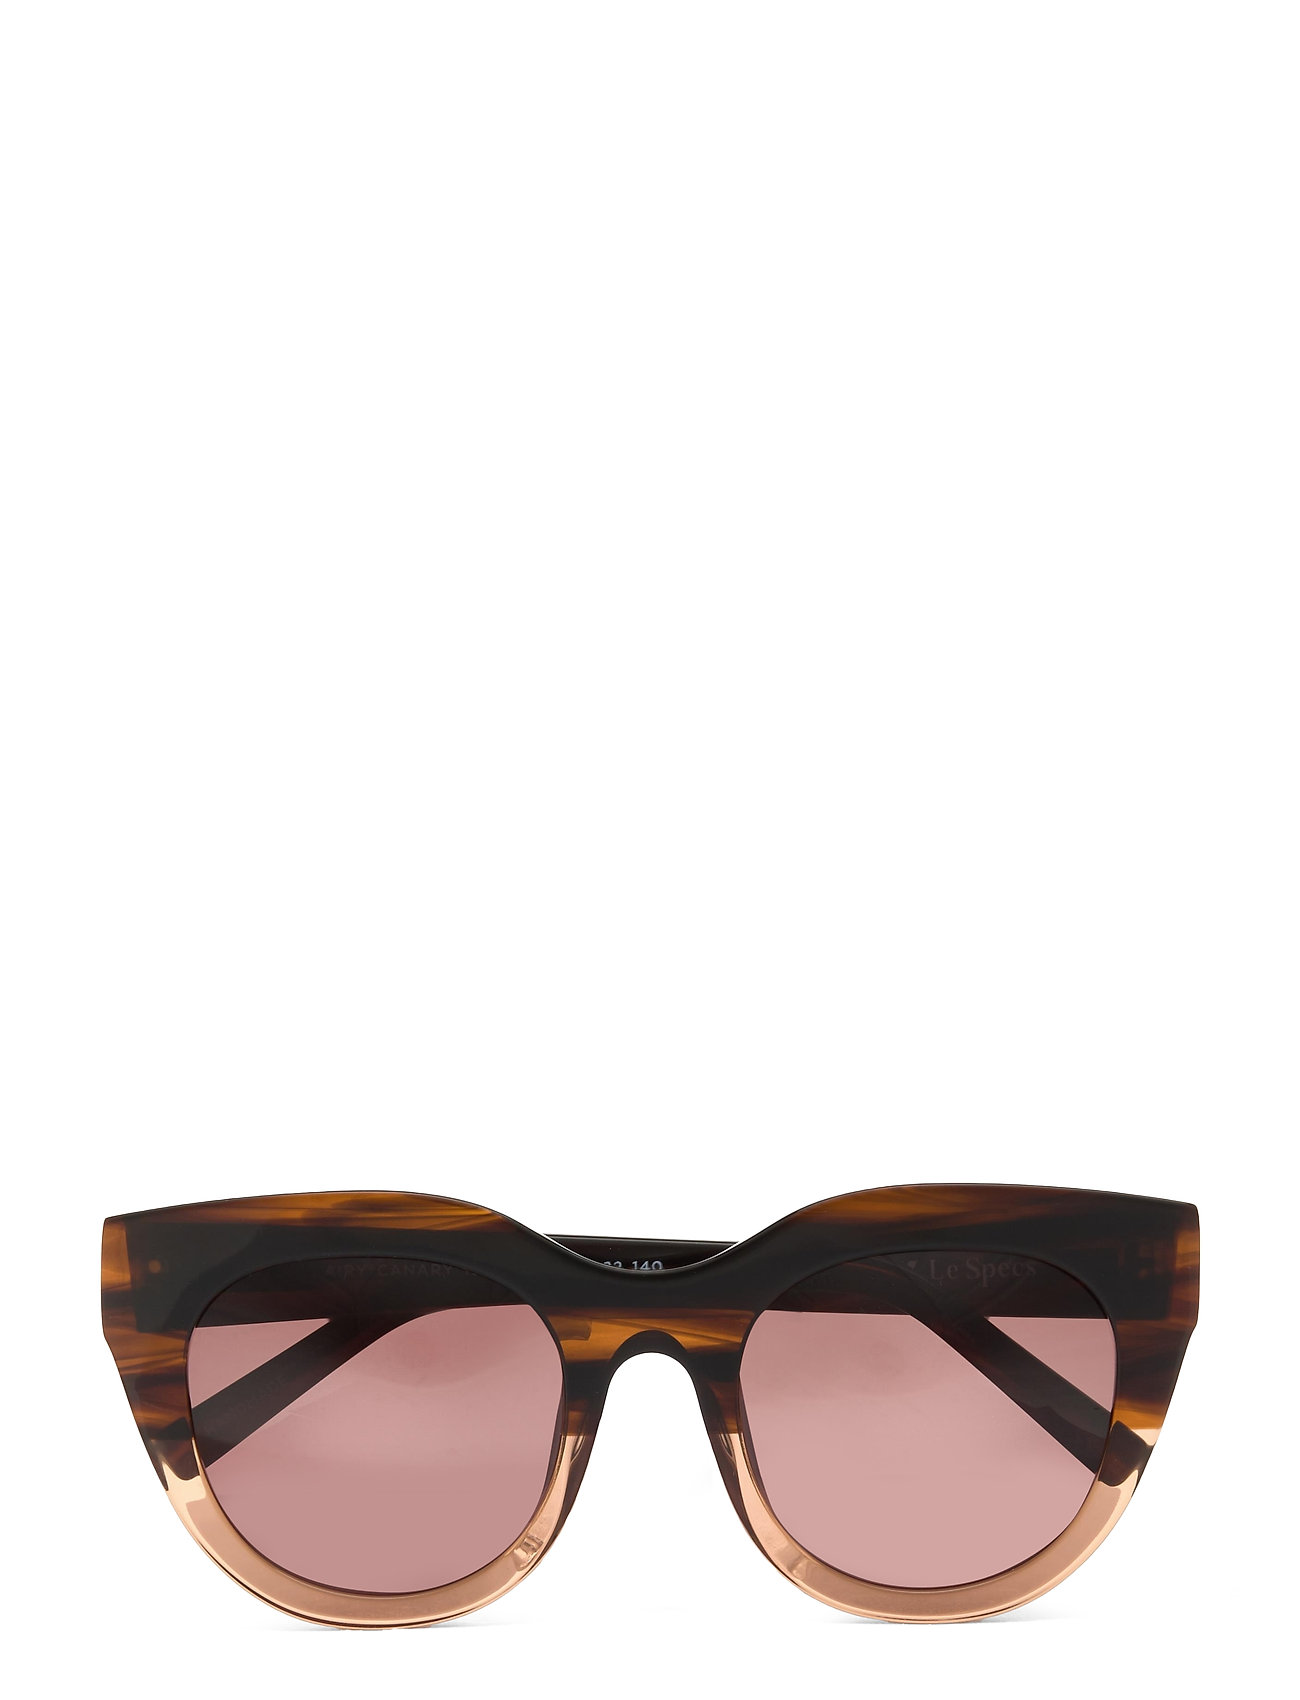 Le Specs Handmade/Rx - Airy Canary Solbriller Brun Le Specs